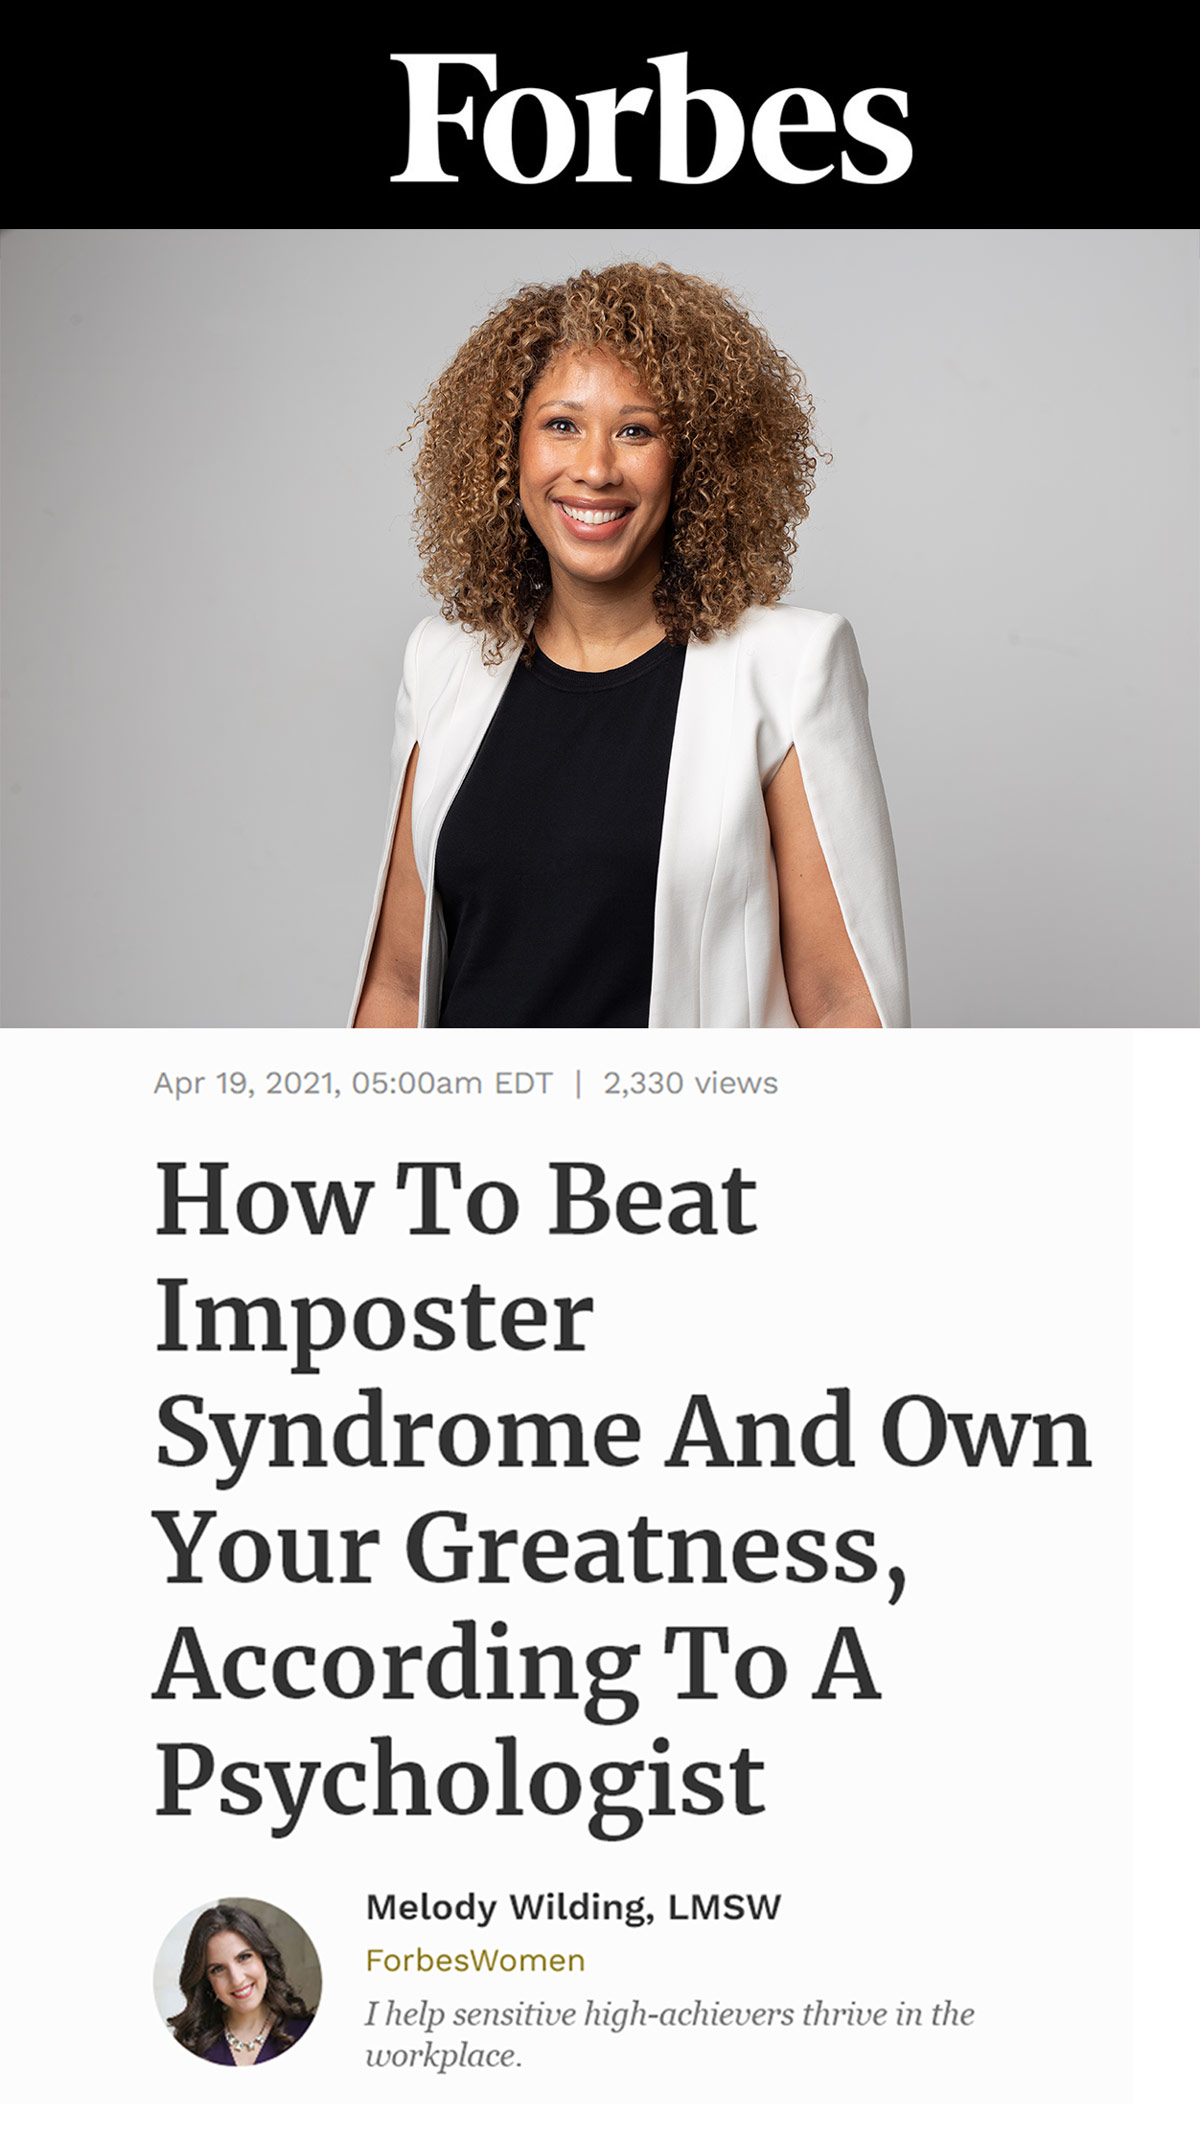 Forbes Article About How To Beat Impostor Syndrome